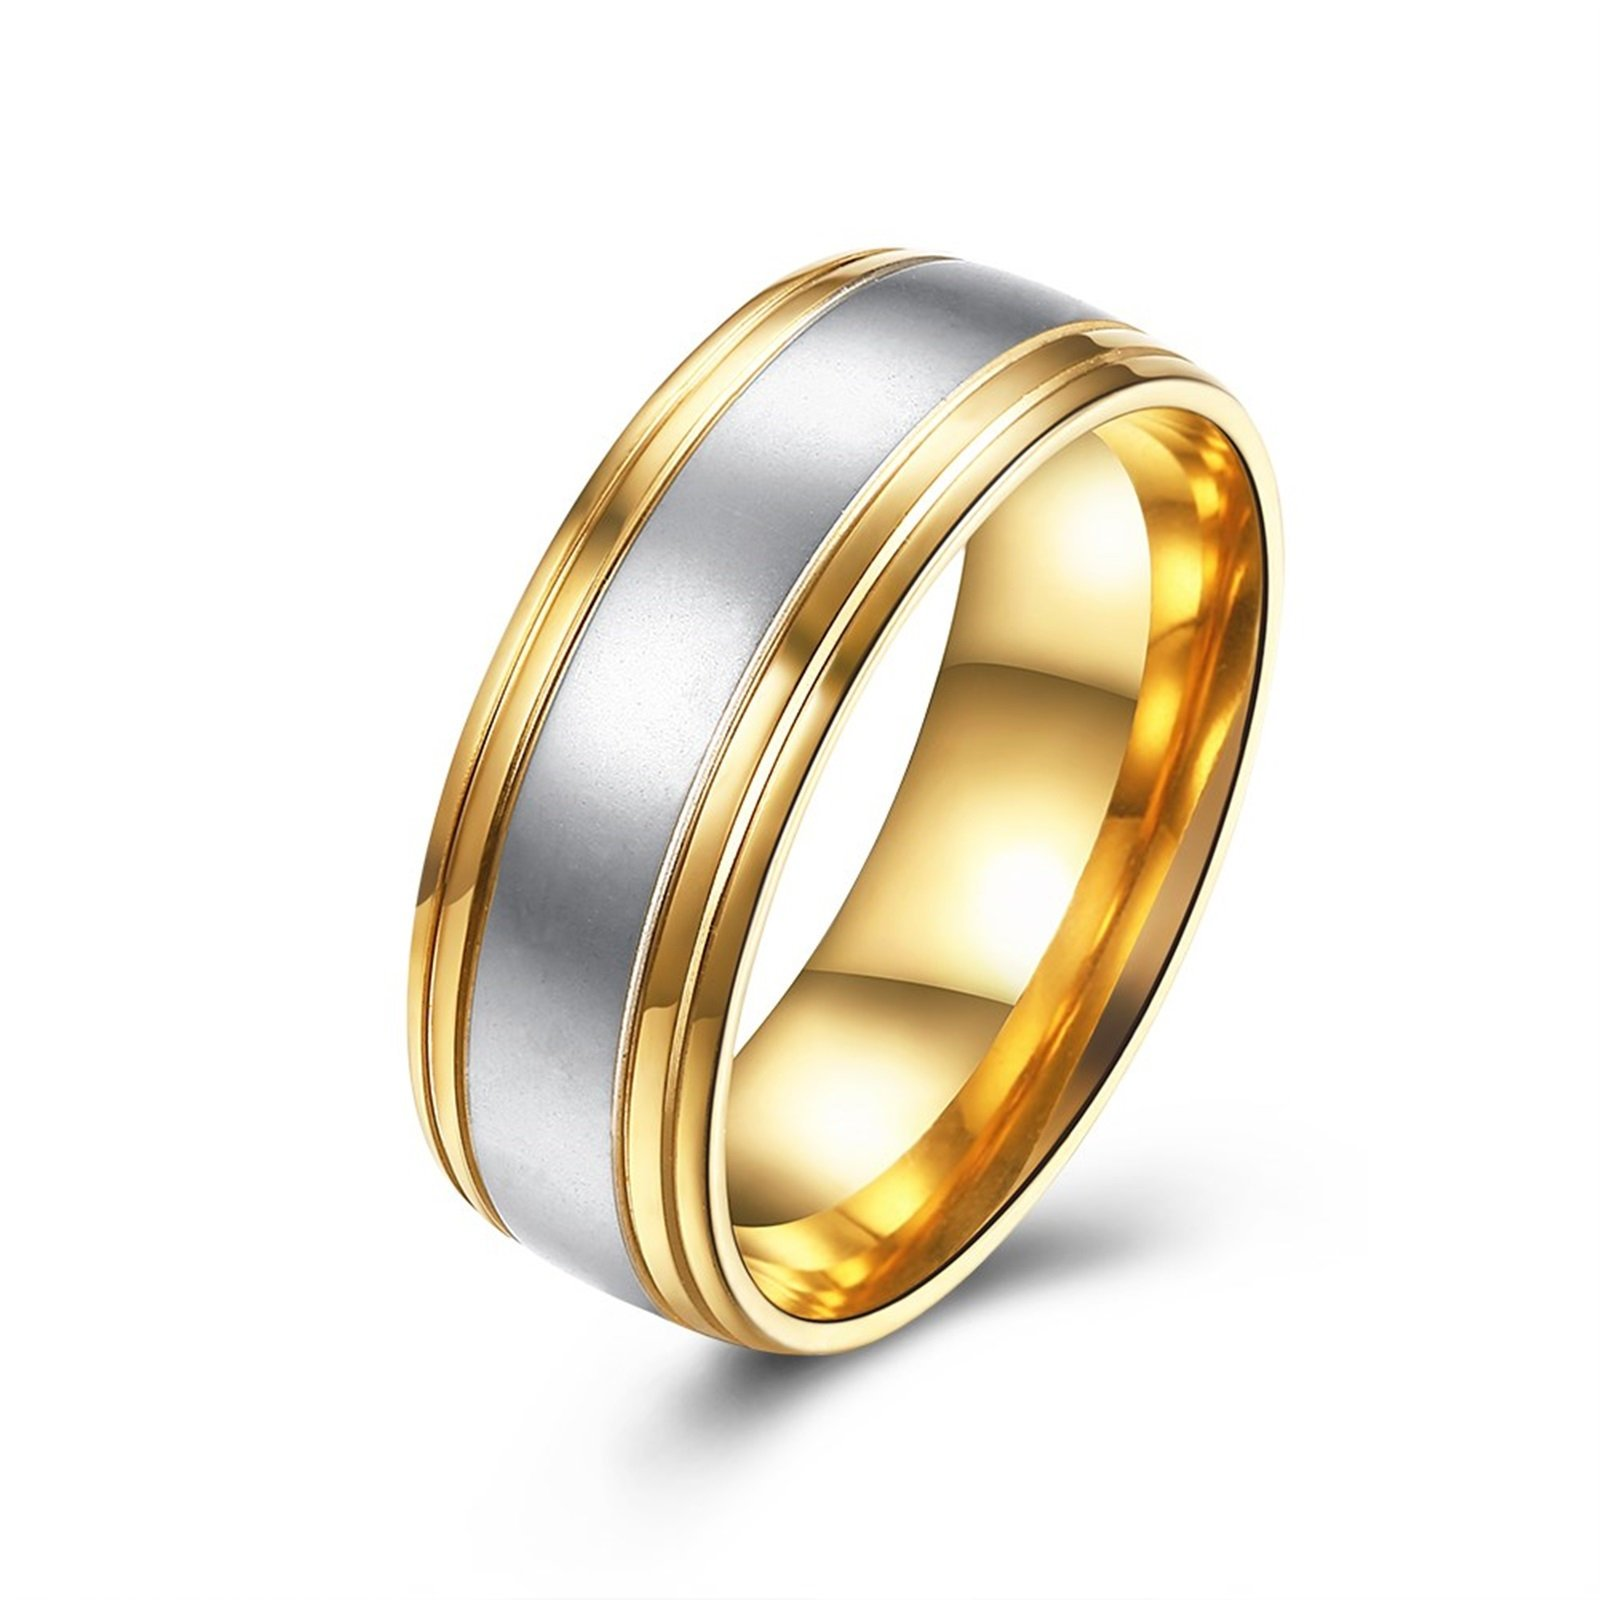 Epinki 8MM Brushed Plain Simple Stainless Steel Gold and Silver Wedding Ring Size 7 Men Accessories